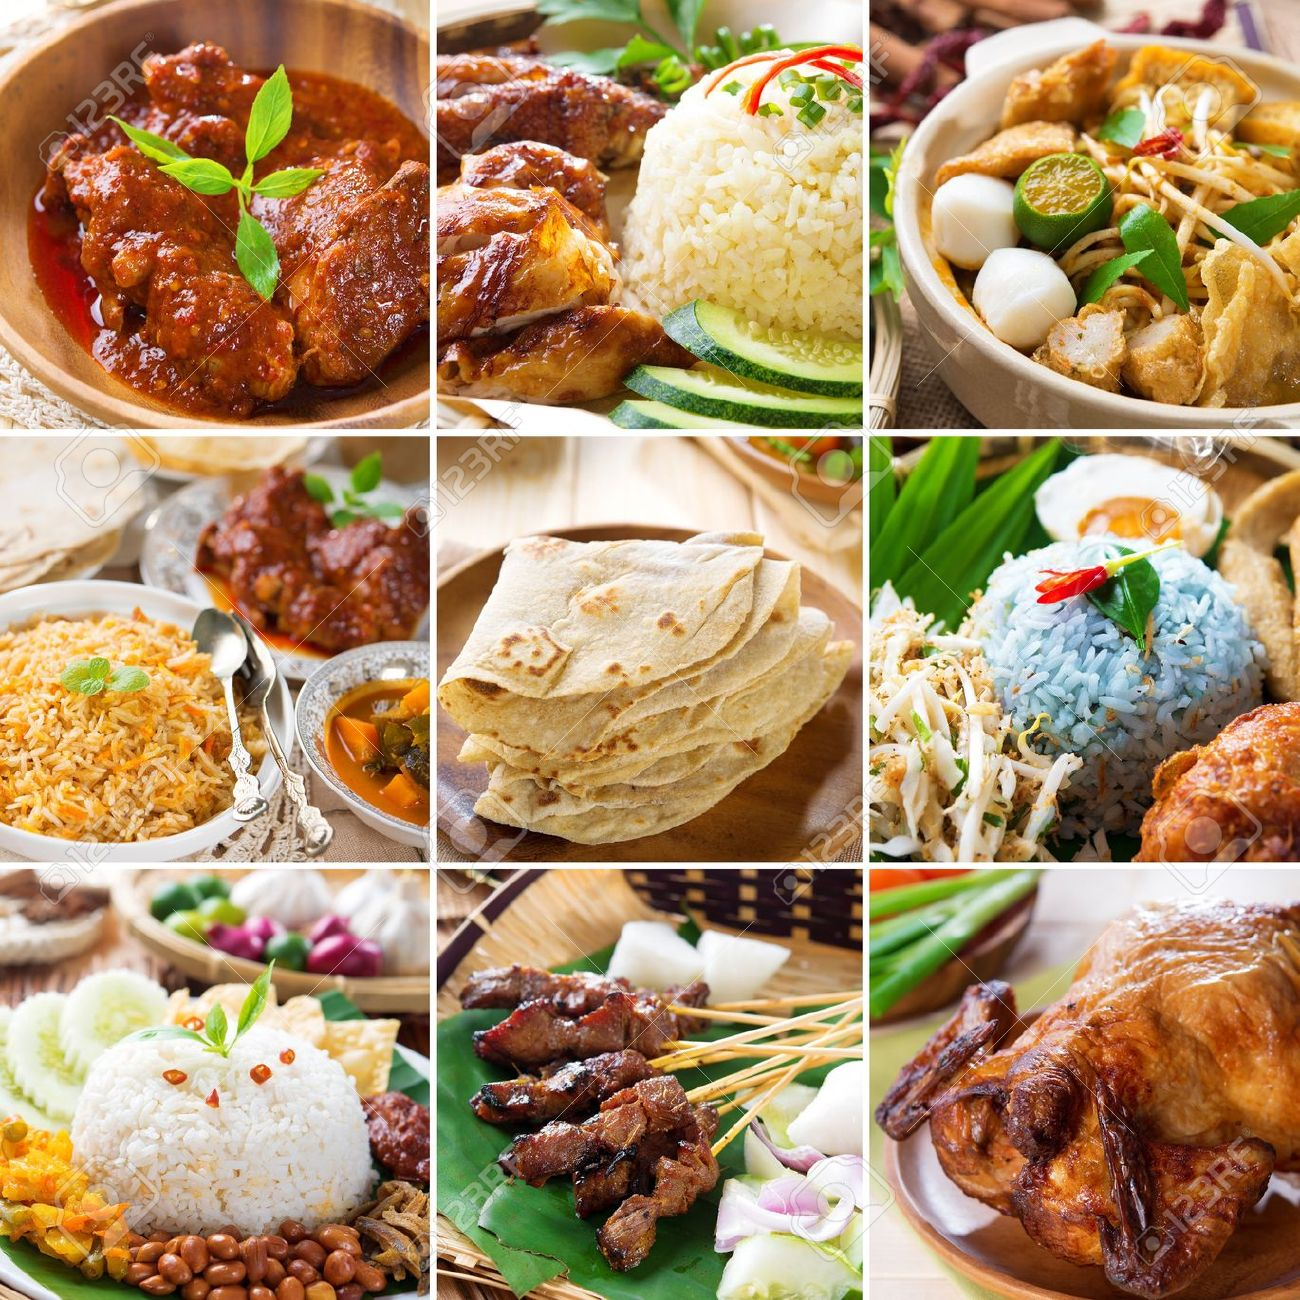 Asian food collection. Various Asia cuisine, curry, rice, noodles, biryani, roti chapatti, nasi kerabu, nasi lemak, satay and roast chicken. Stock Photo - 21373874